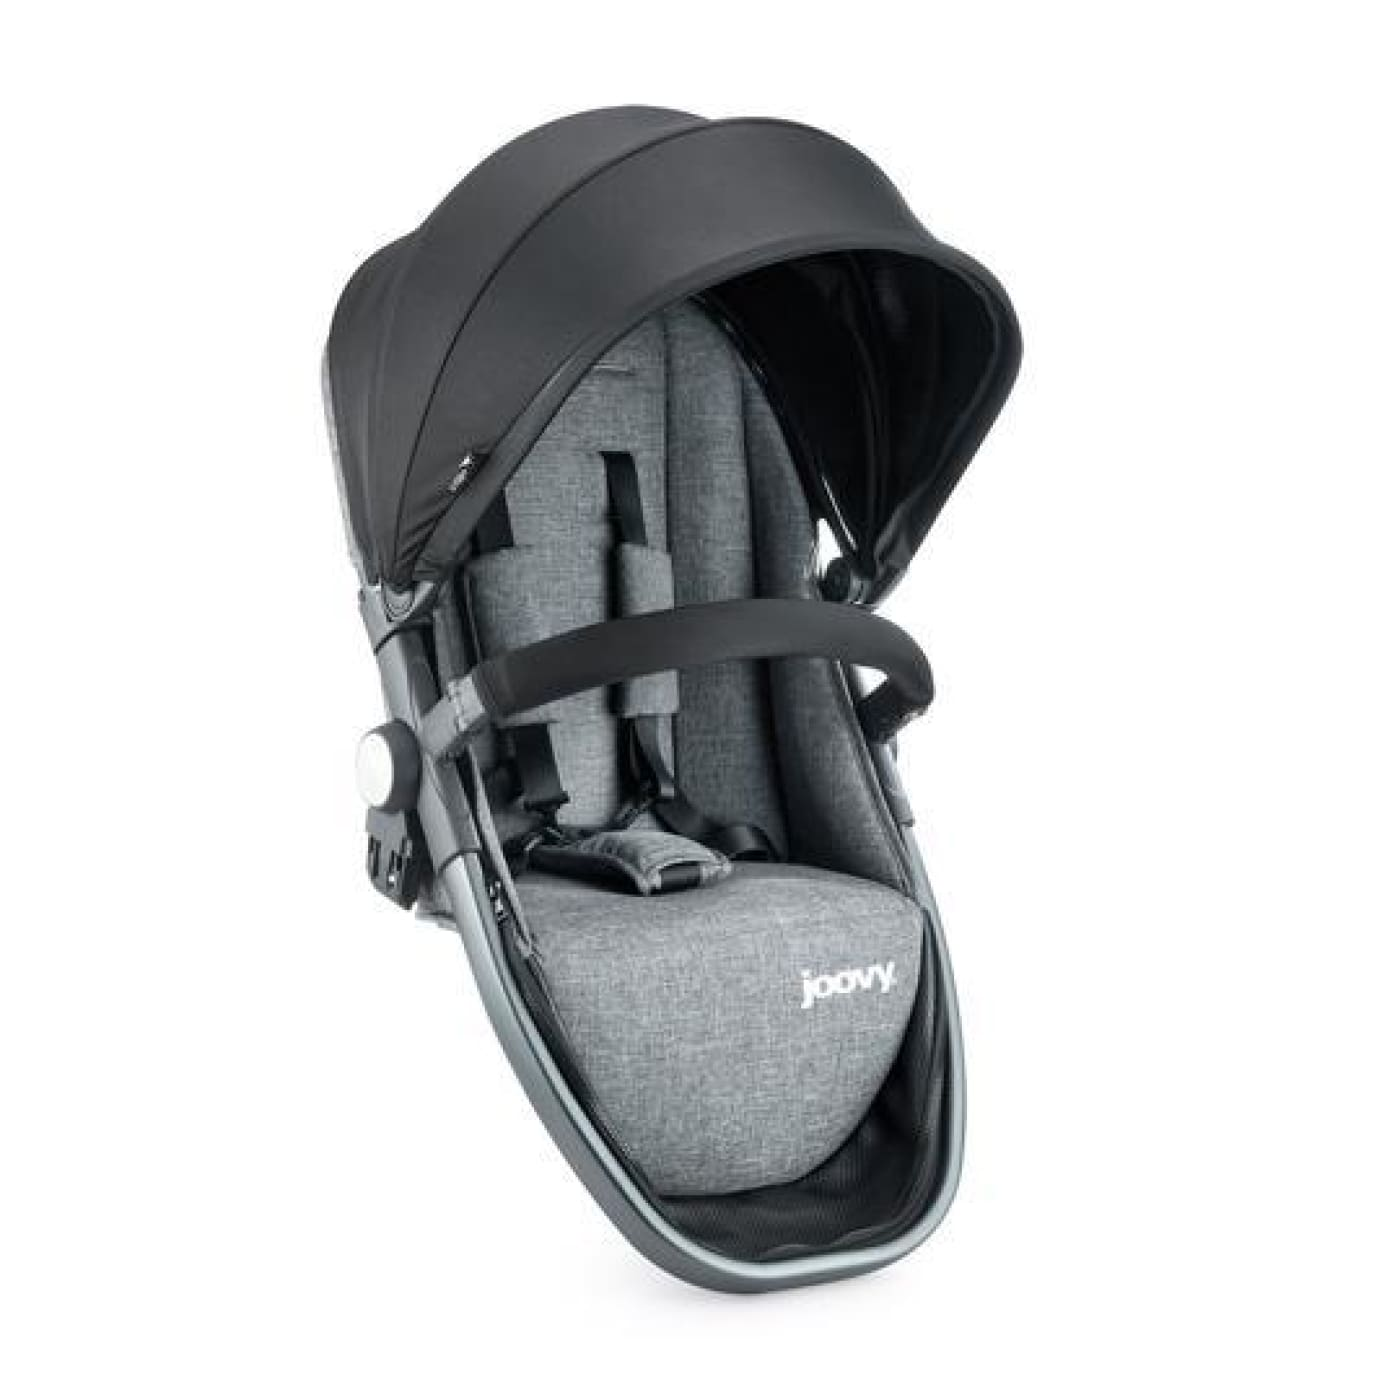 Joovy Qool Second Seat - Grey Melange - Grey Melange - PRAMS & STROLLERS - TODDLER SEATS/CONVERSION KITS